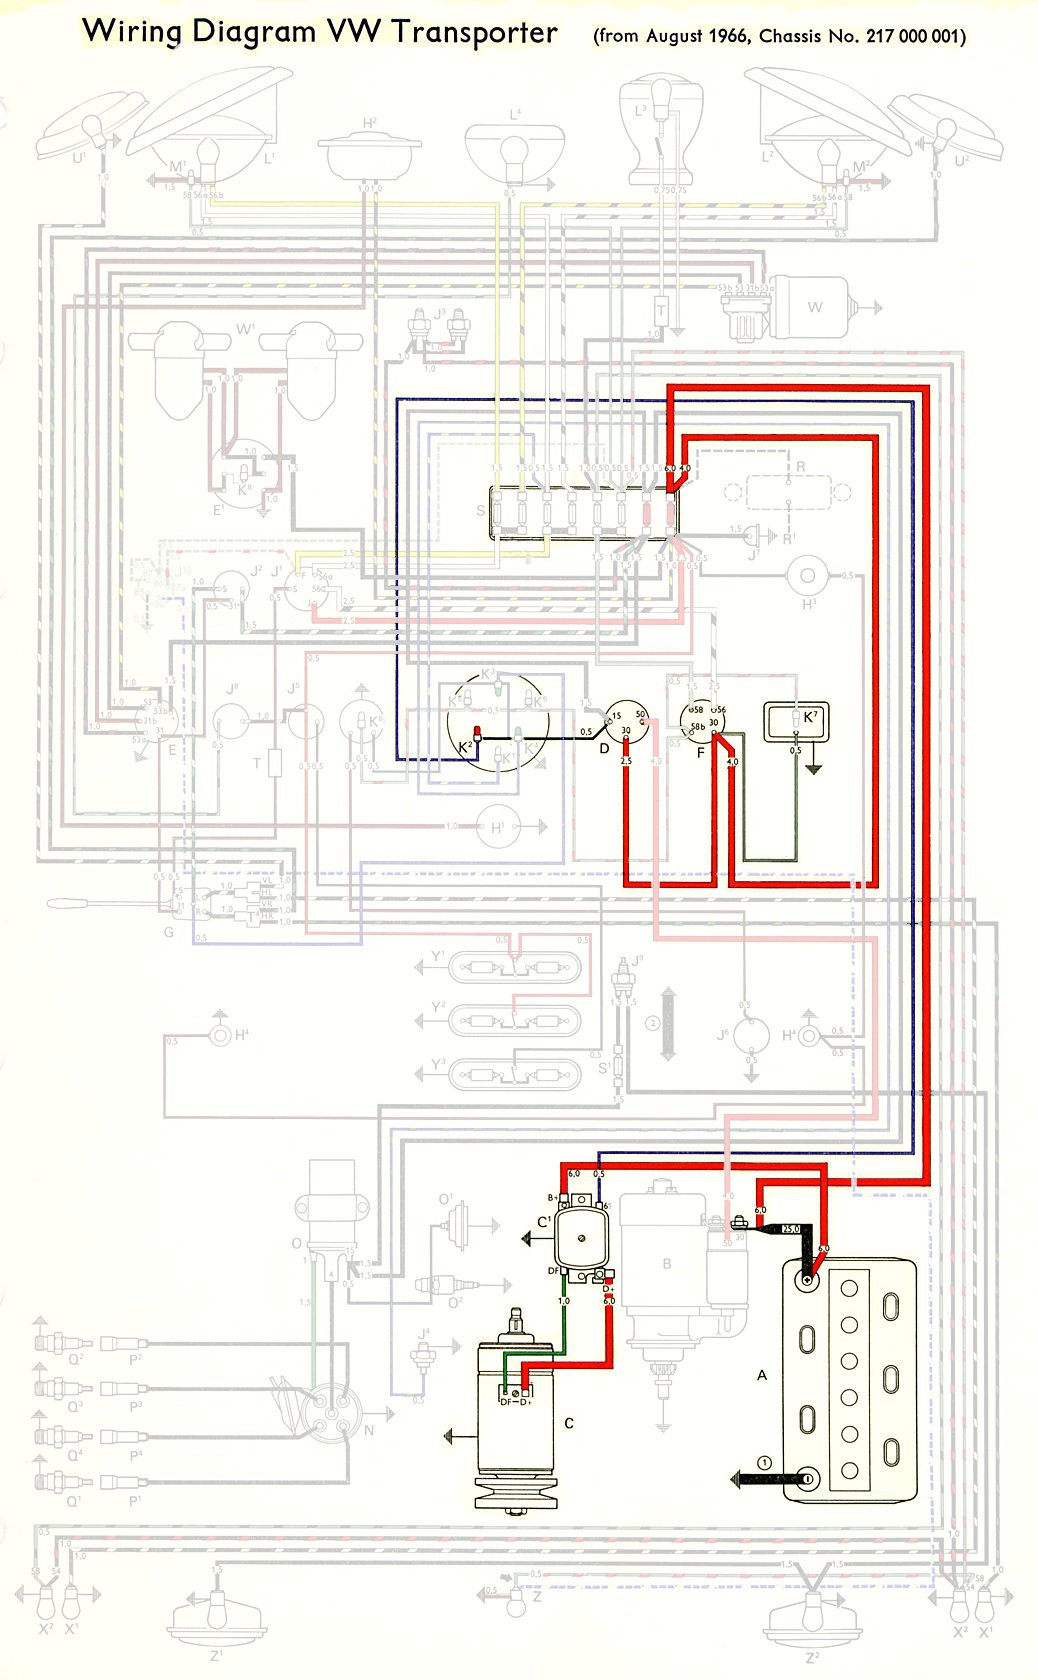 1967Bus_Eur_UnfusedSchematic ambulance wiring diagram elevator schematic diagram wiring diagram horton 4160 wiring diagram at panicattacktreatment.co